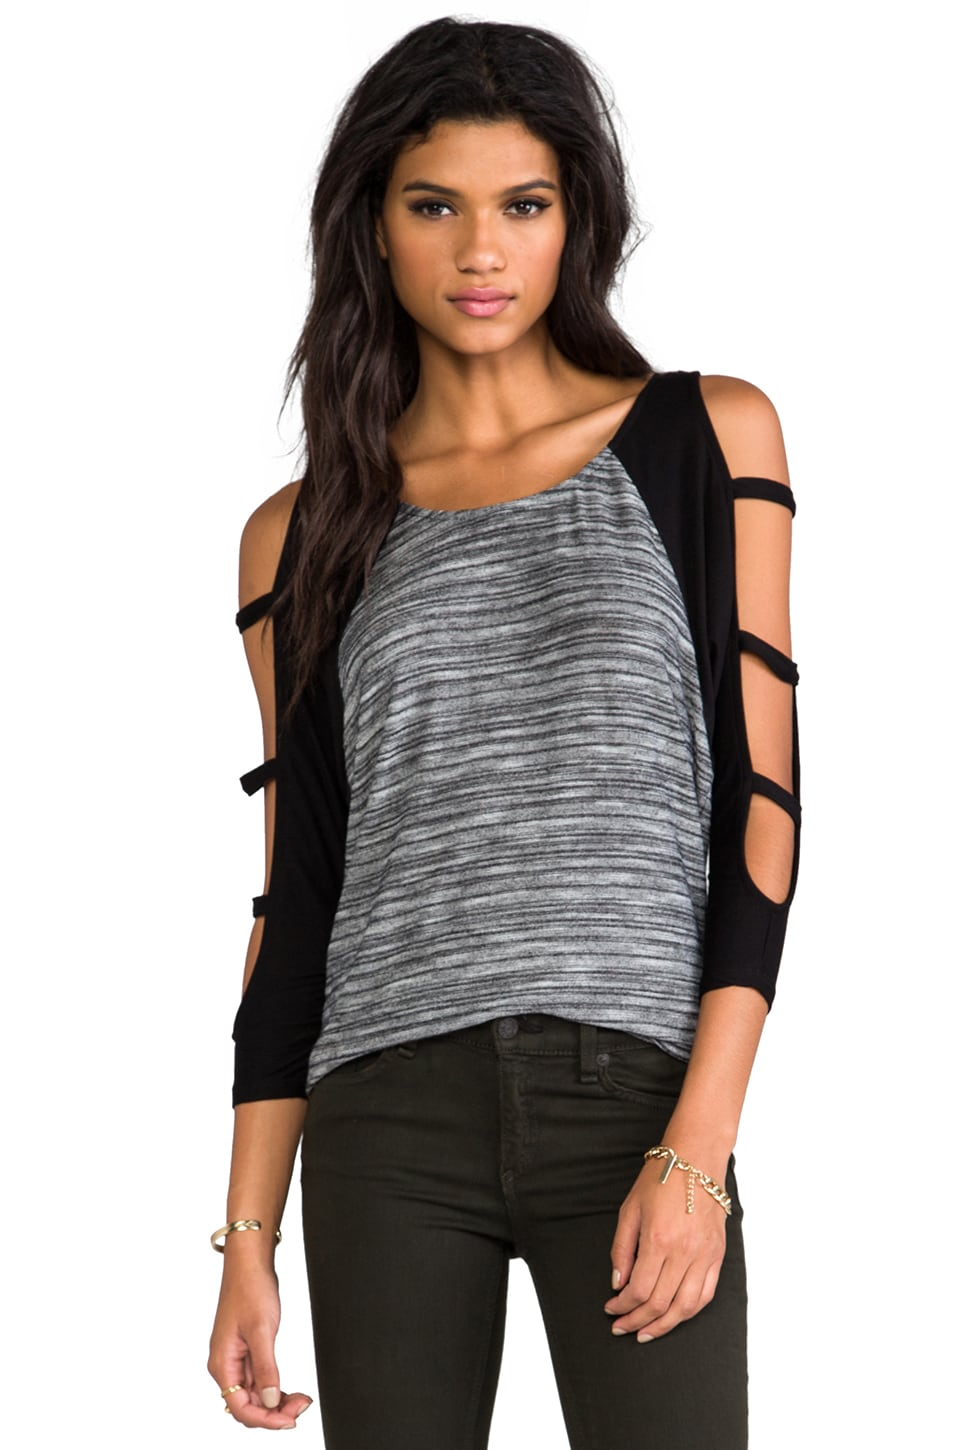 WOODLEIGH Kenedy Top in Charcoal